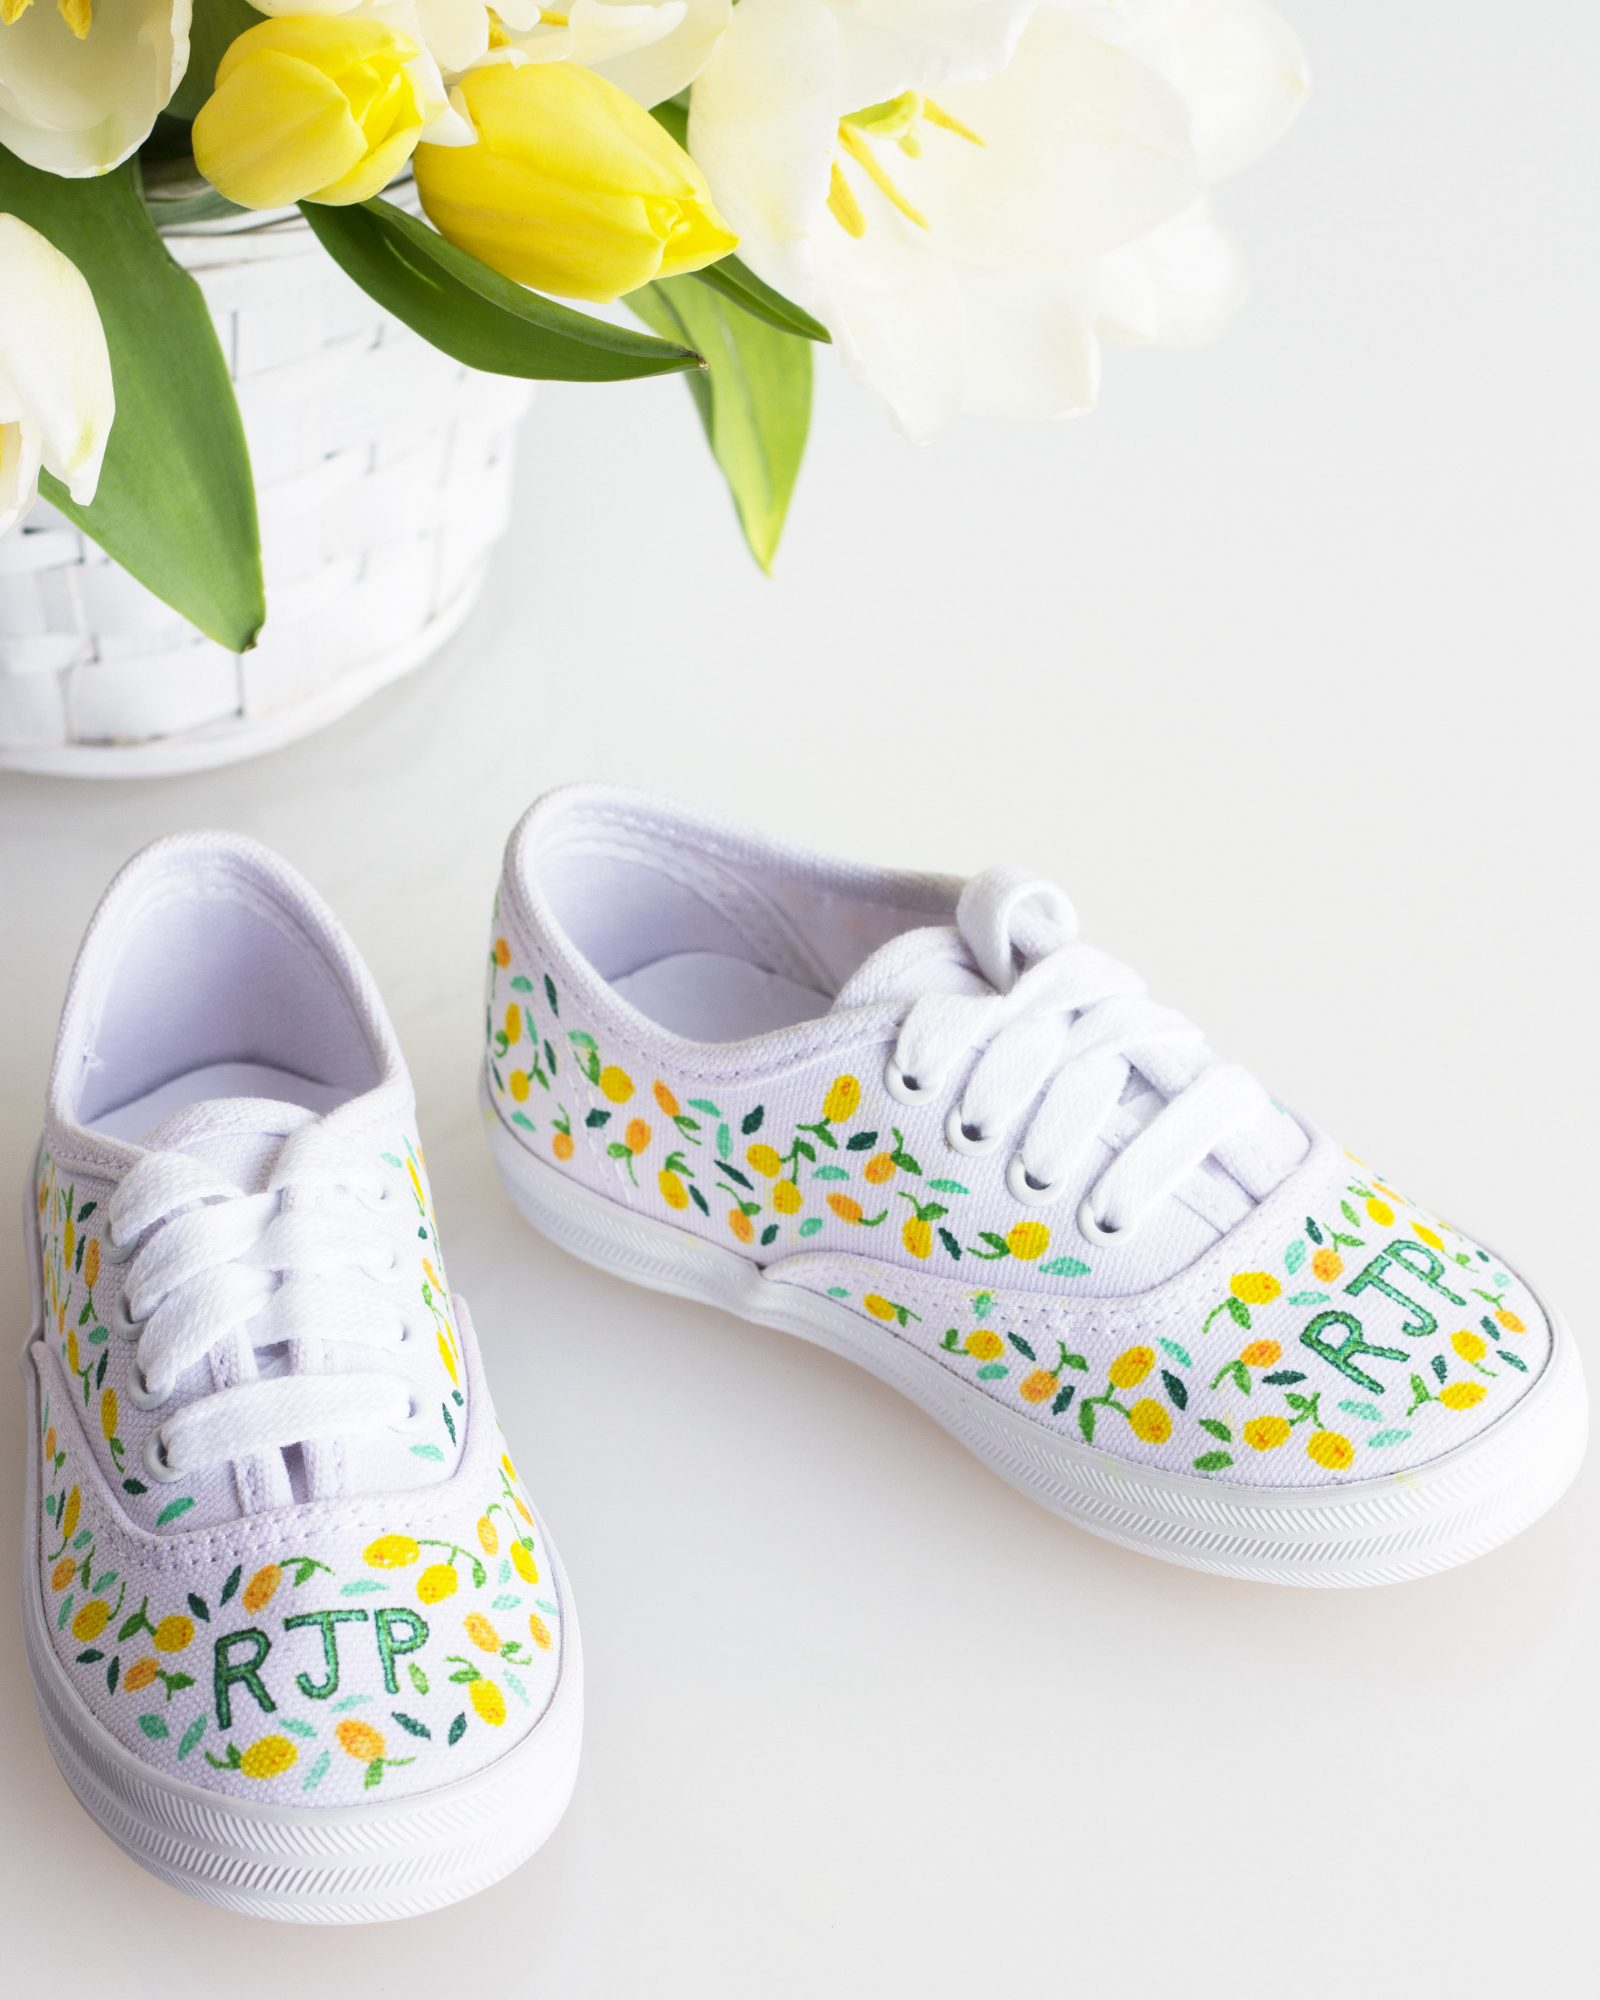 DIY Personalized Sneakers for Your